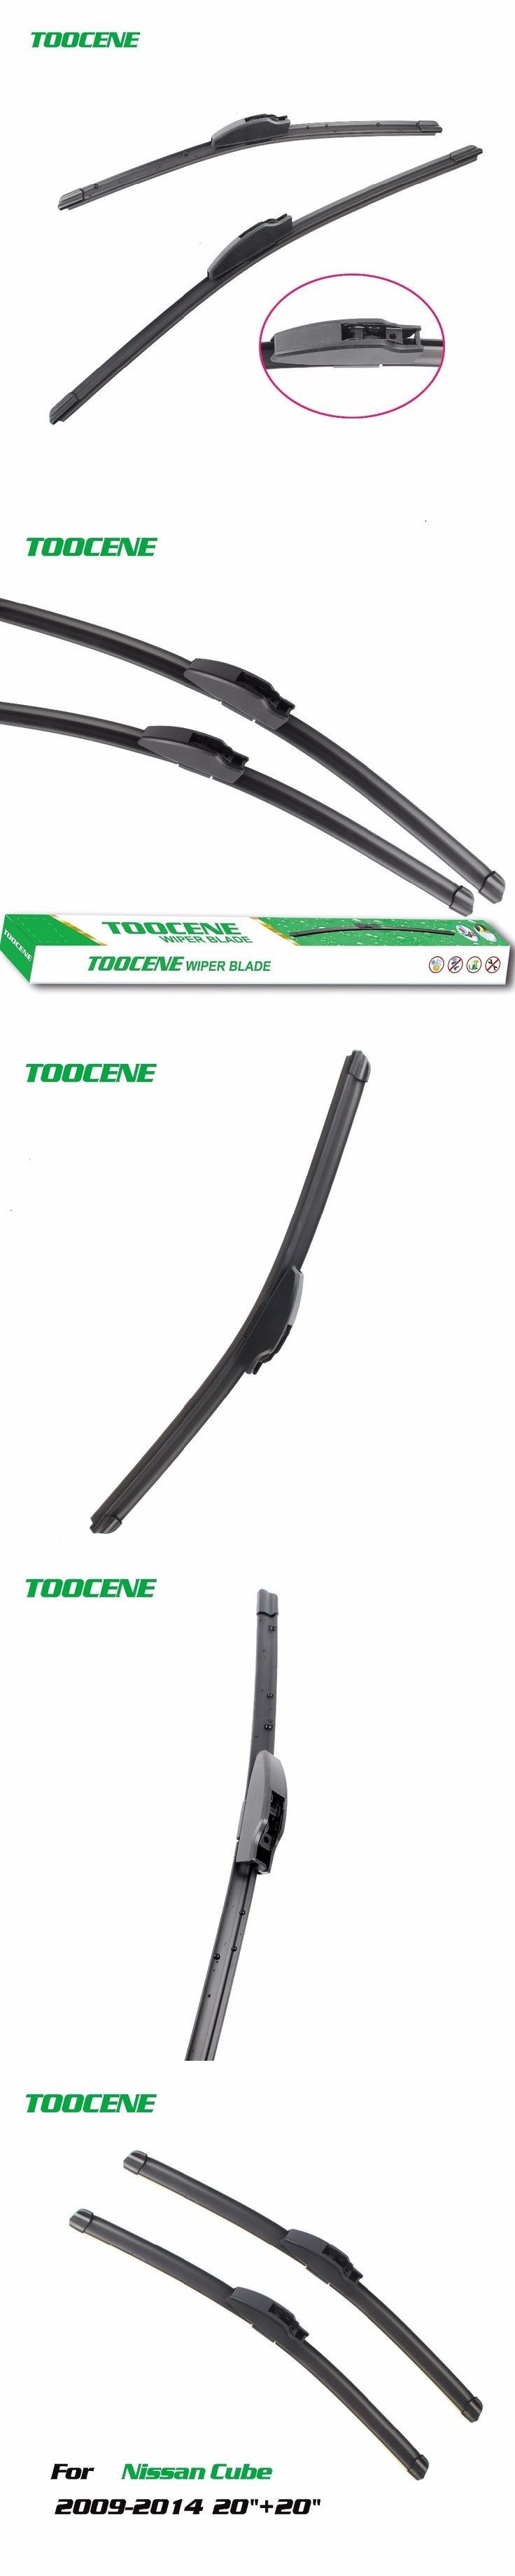 Toocene  Wiper Blade For Nissan Cube 2009-2014 size20''+20'' Pair Window Windshield Windscreen Rubber Car Accessories